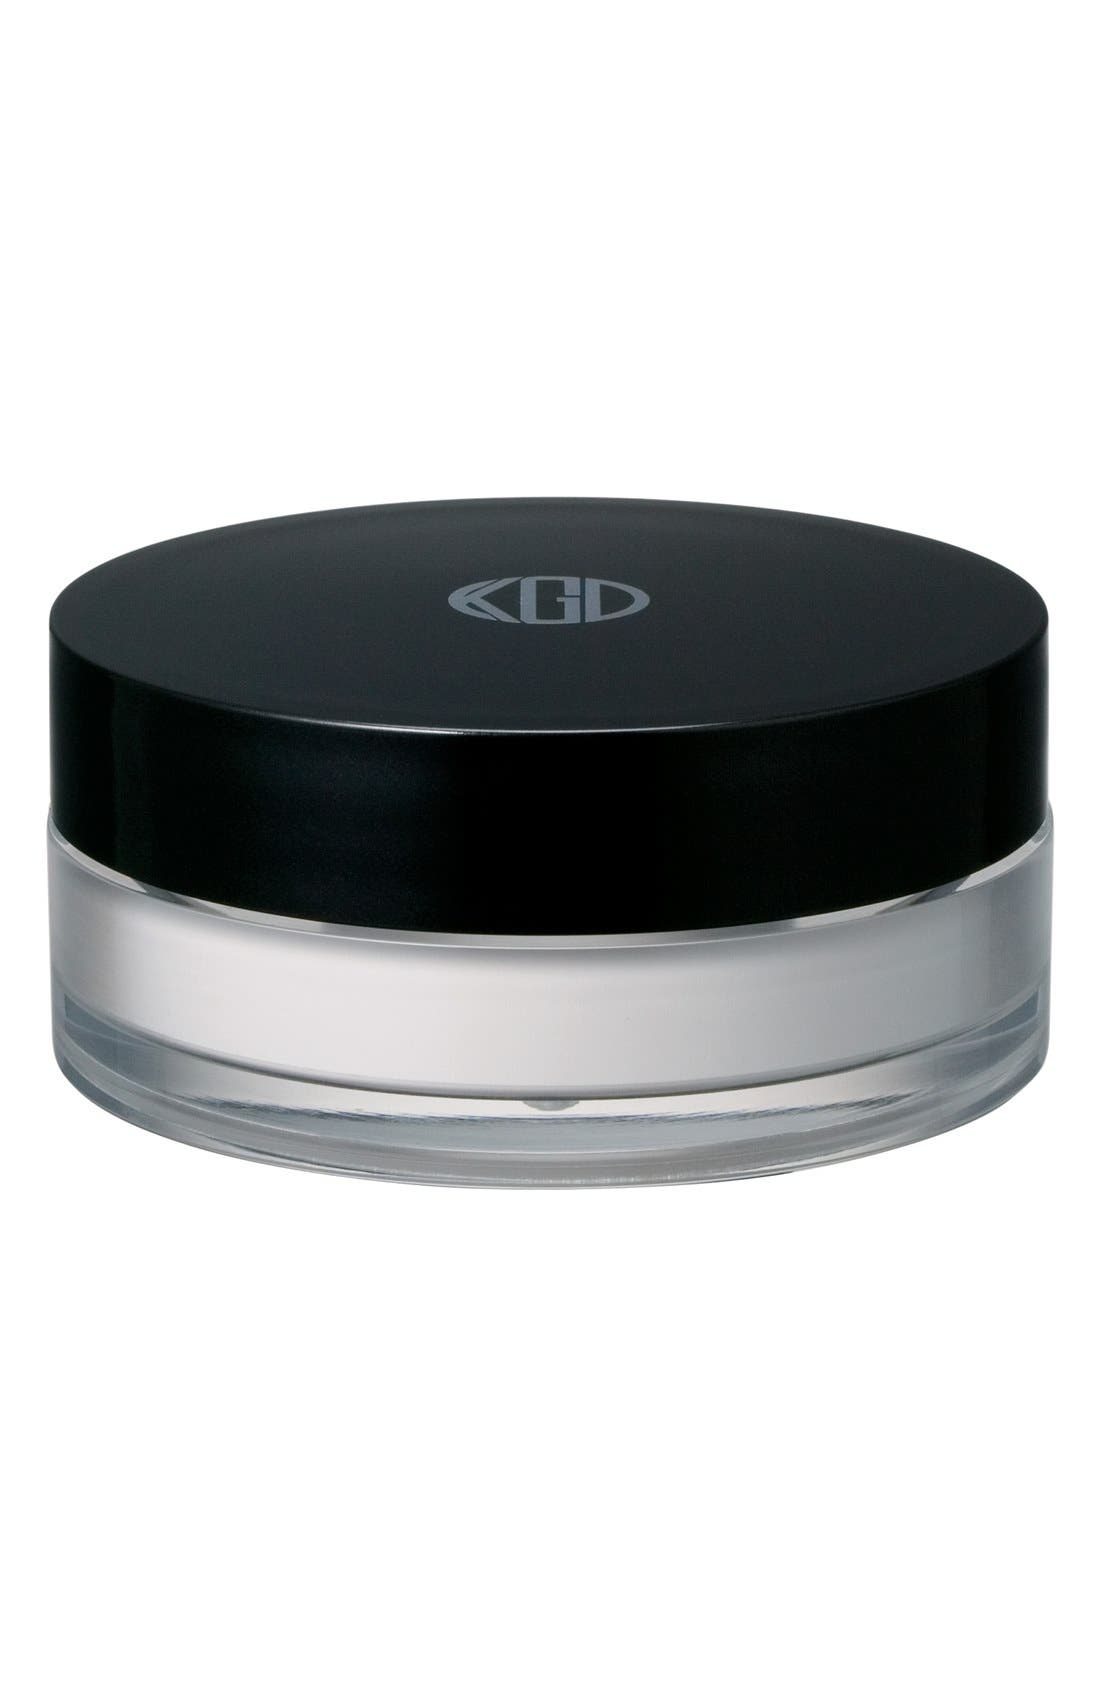 Koh Gen Do 'Maifanshi' Face Powder